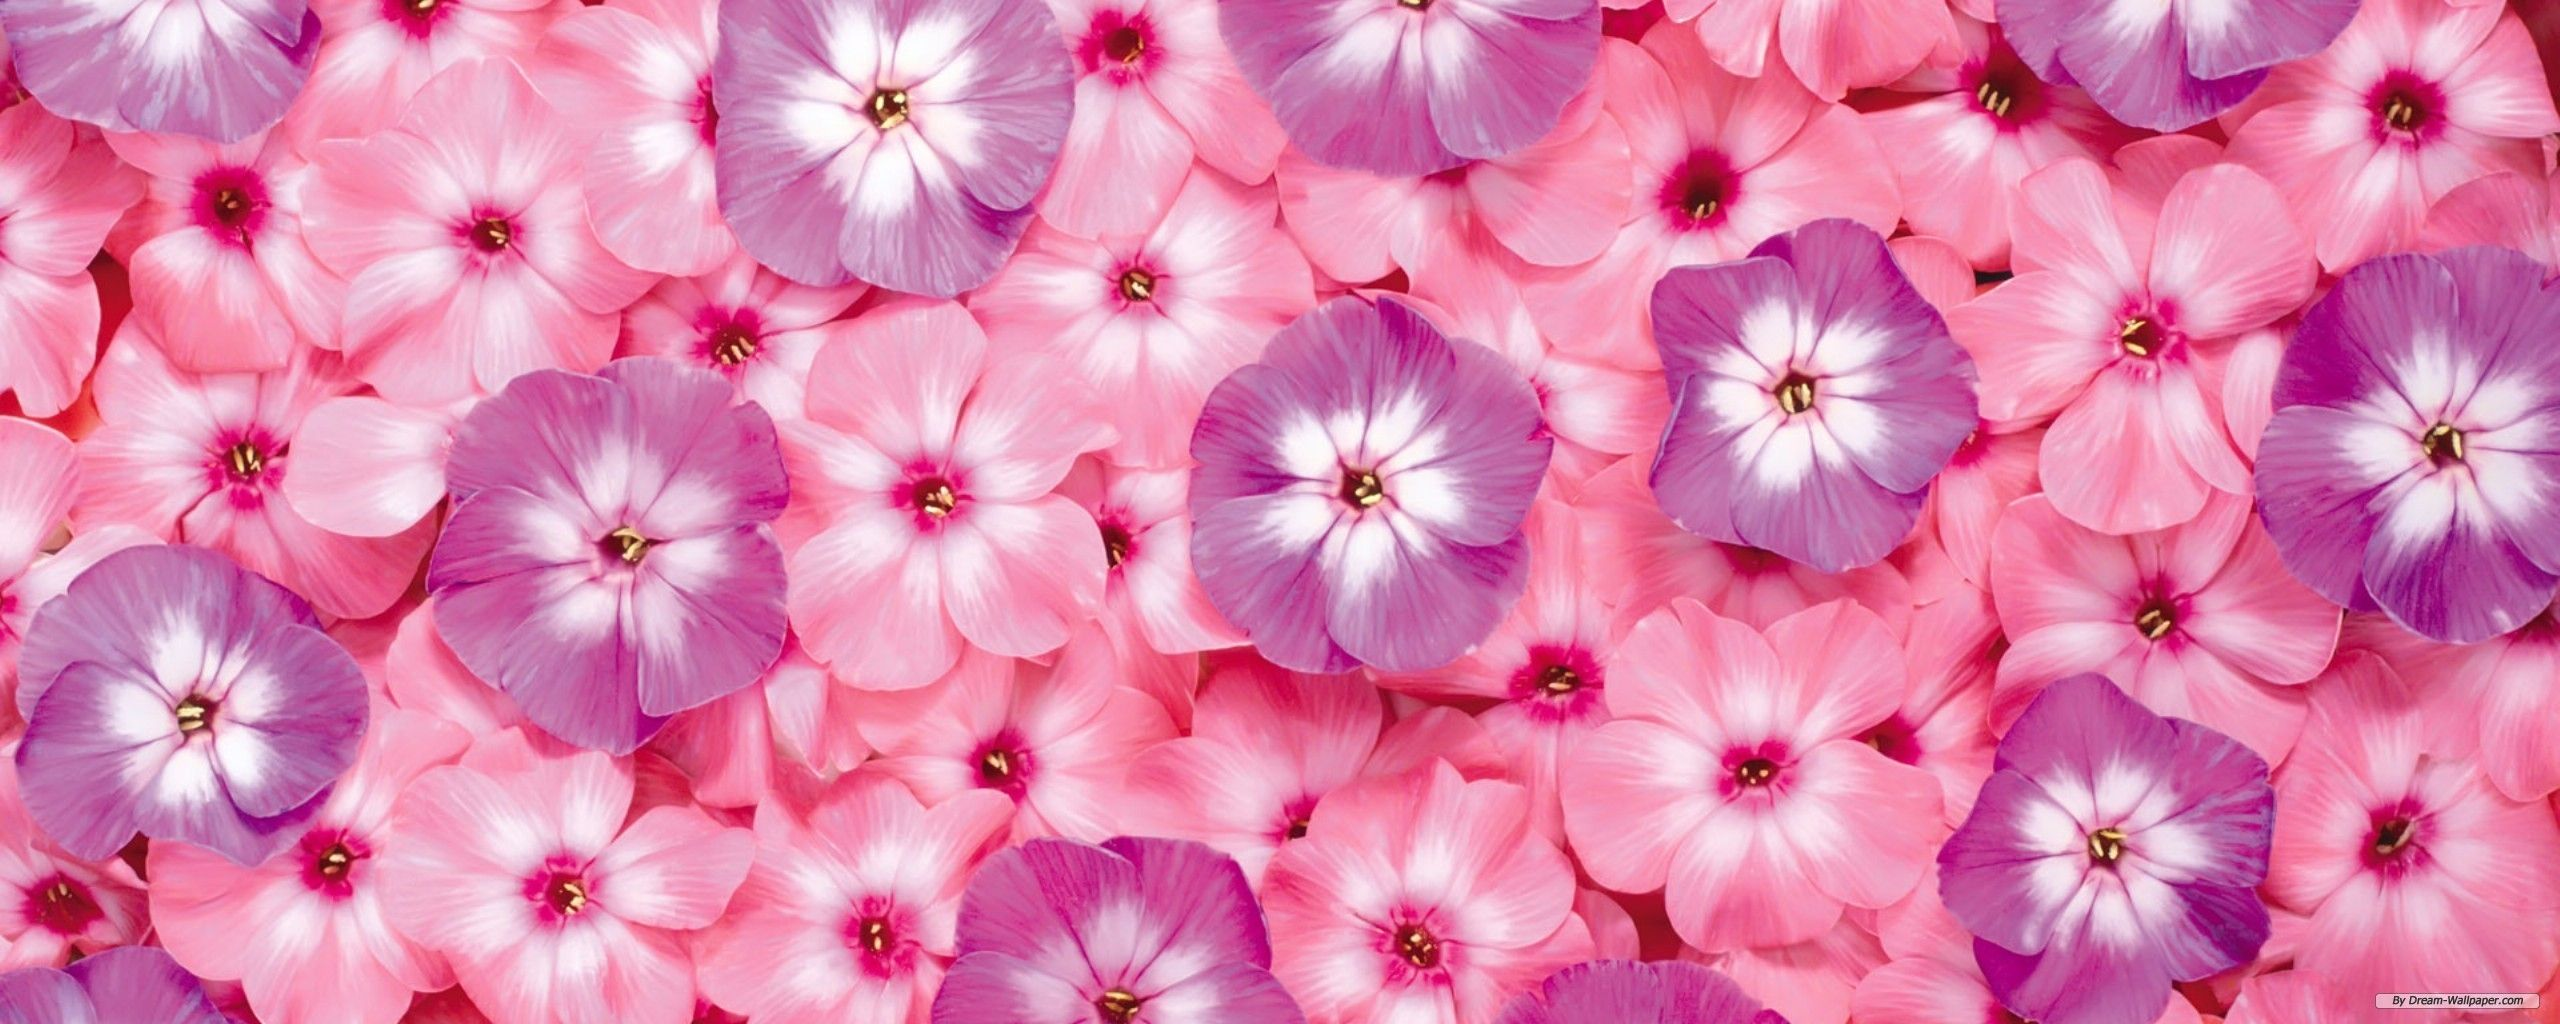 Tumblr iphone wallpaper purple - Iphone Flower Backgrounds Group 1280 800 Tumblr Flower Wallpapers 40 Wallpapers Adorable